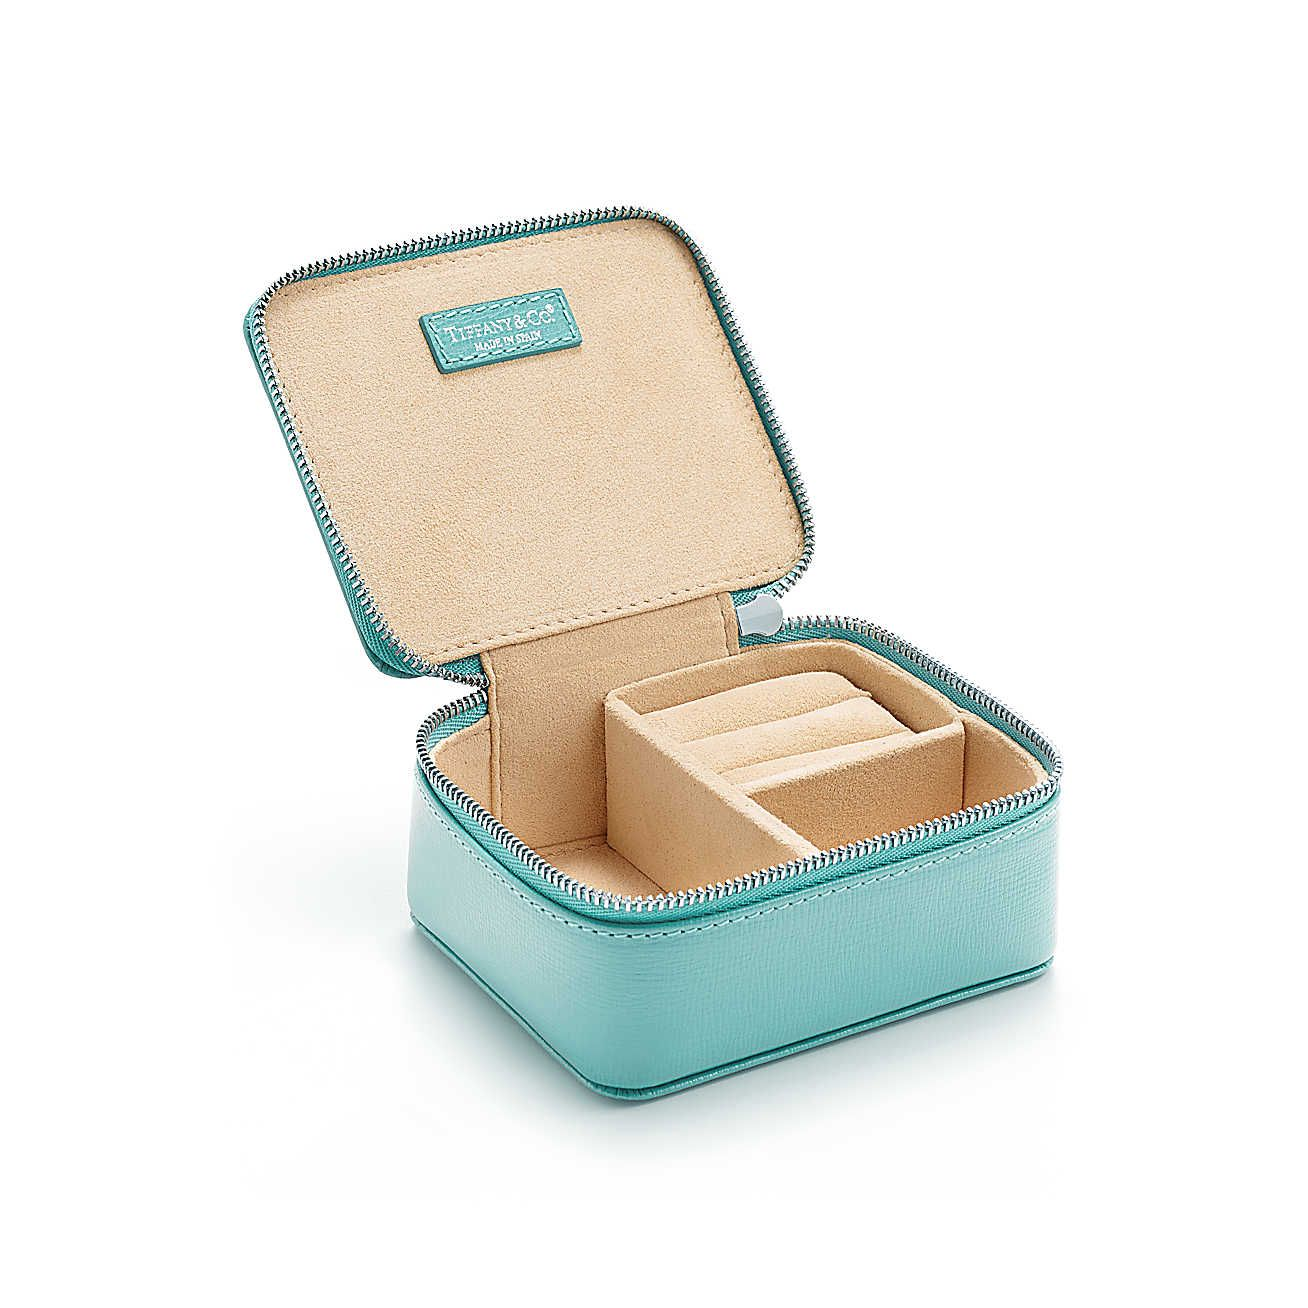 33++ Tiffany and co travel jewelry case viral